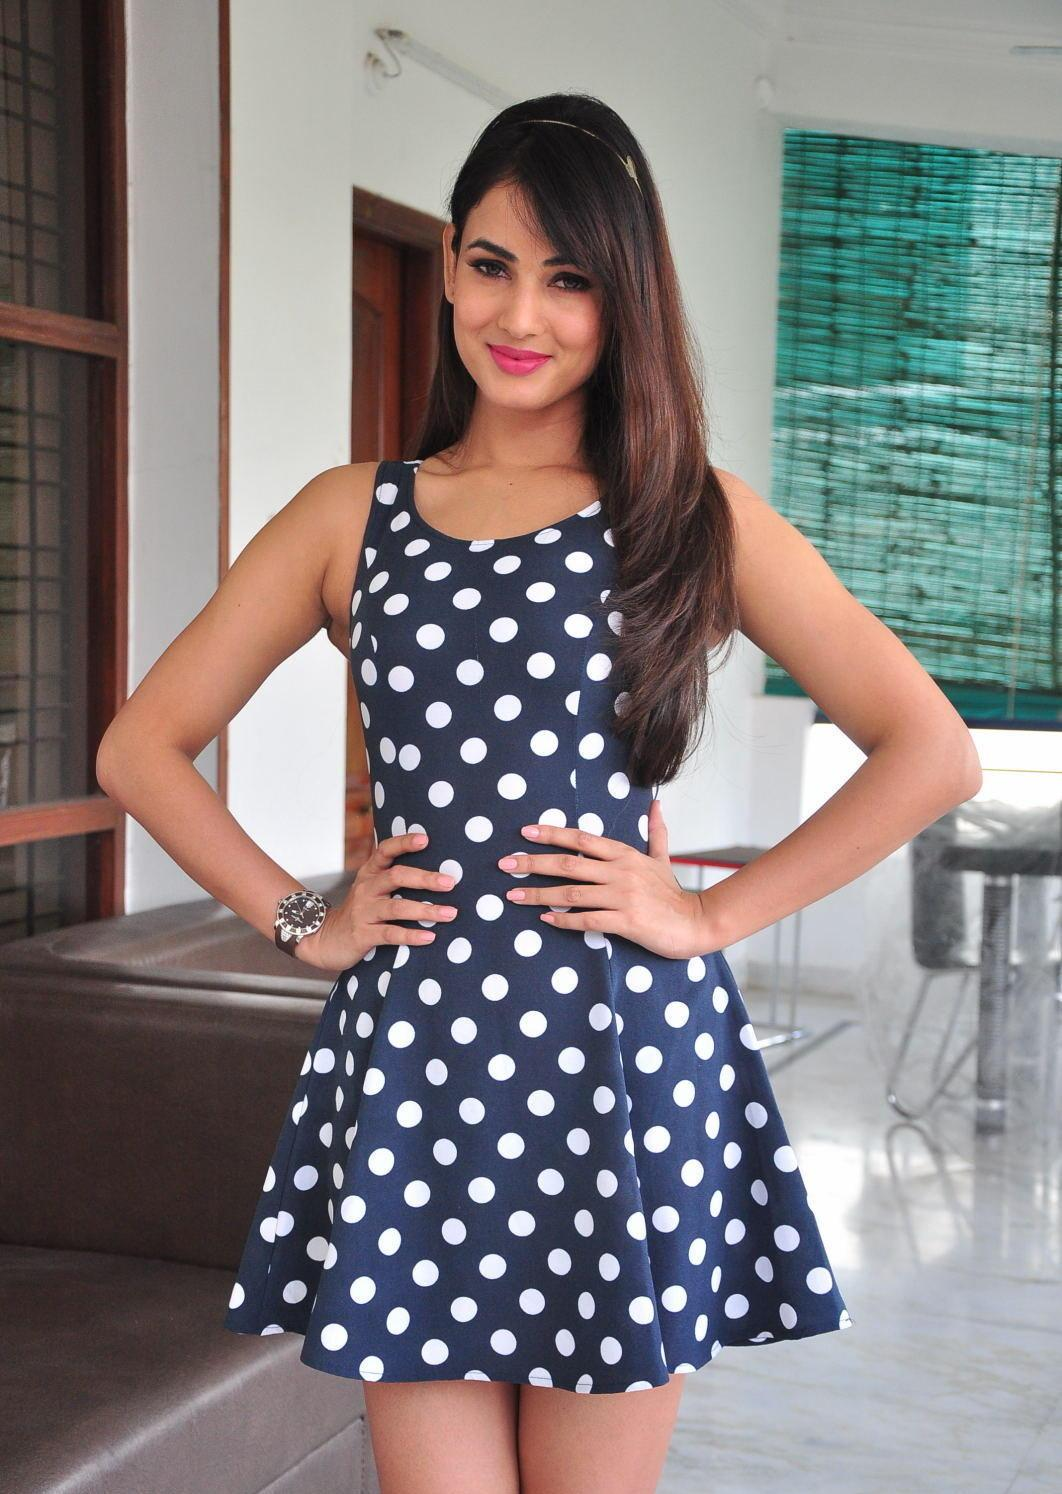 Sonal Chauhan Looks Irresistibly Sexy In A Black Polka Dot -3423